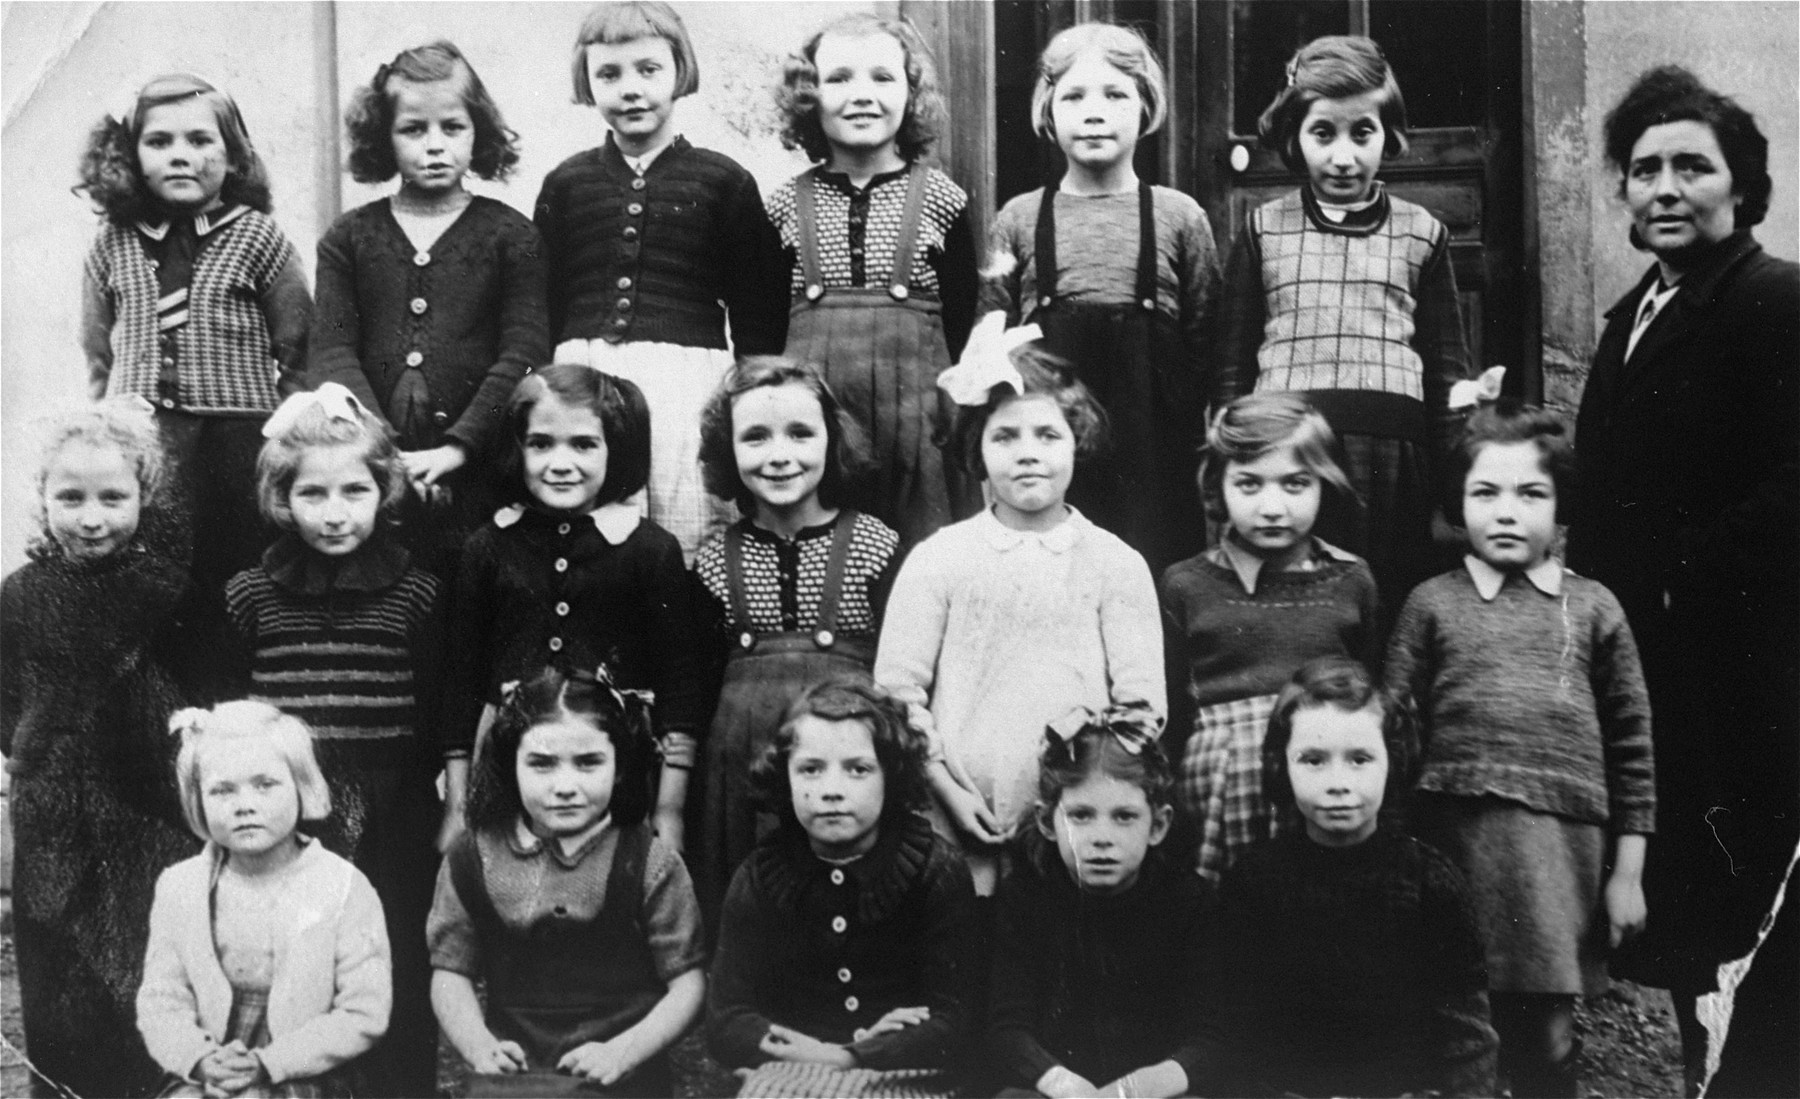 Group photograph taken at the school at an orphanage for Jewish children in Verneuil.   Among these children is Evi Weisz.